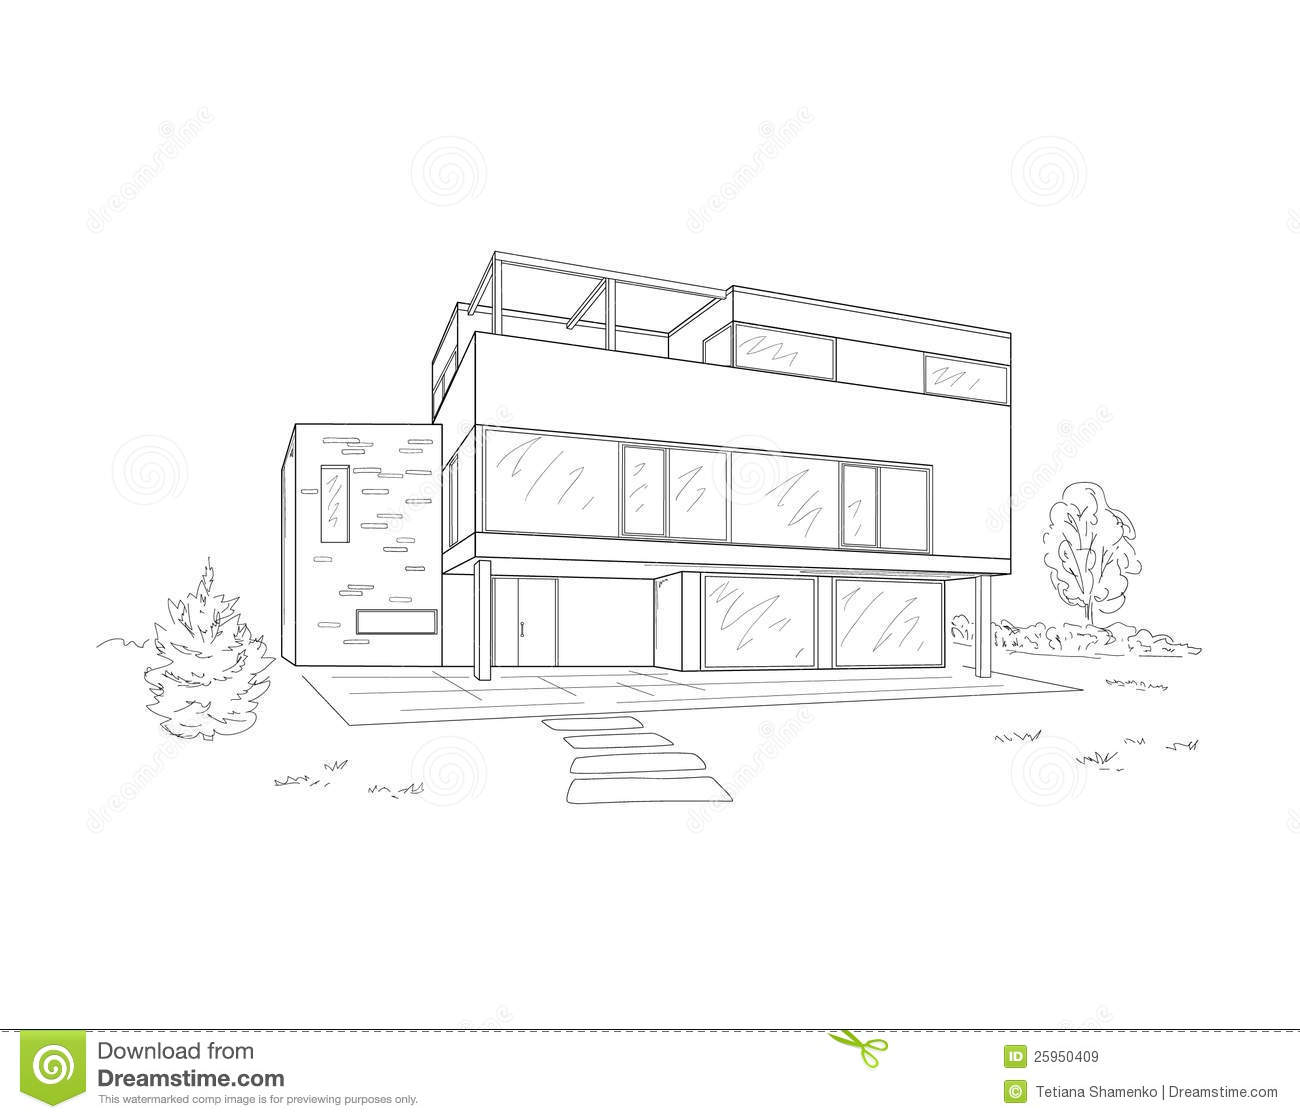 Building drawing stock vector. Illustration of plan